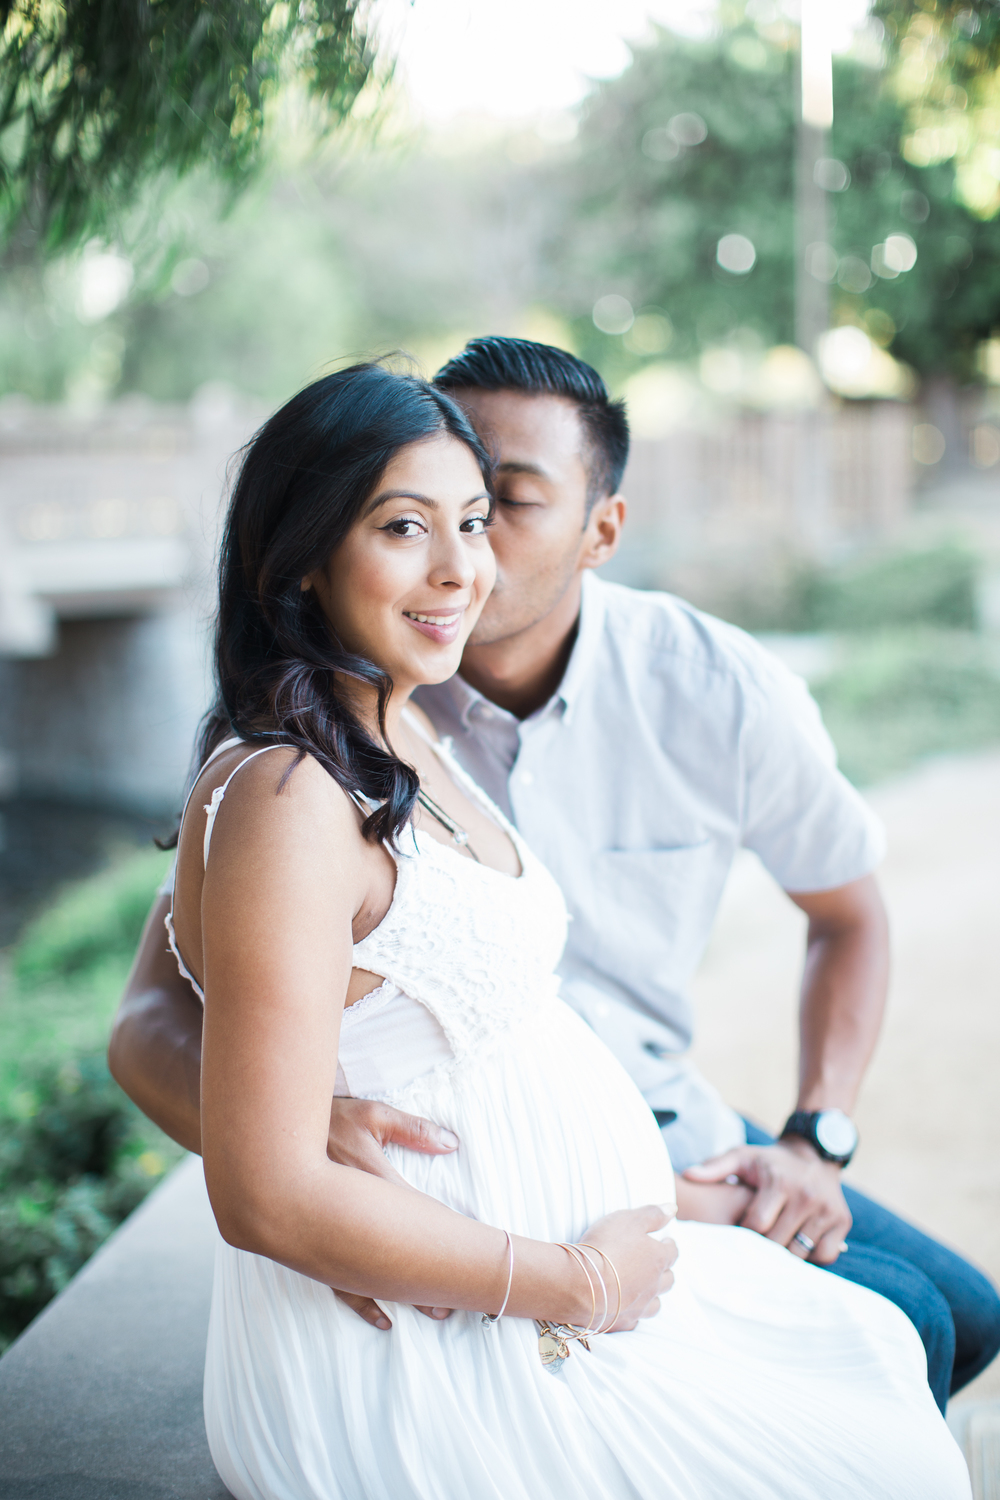 Marcella_Maternity_Cerritos_BrandonJFerlin_Photography-53.jpg